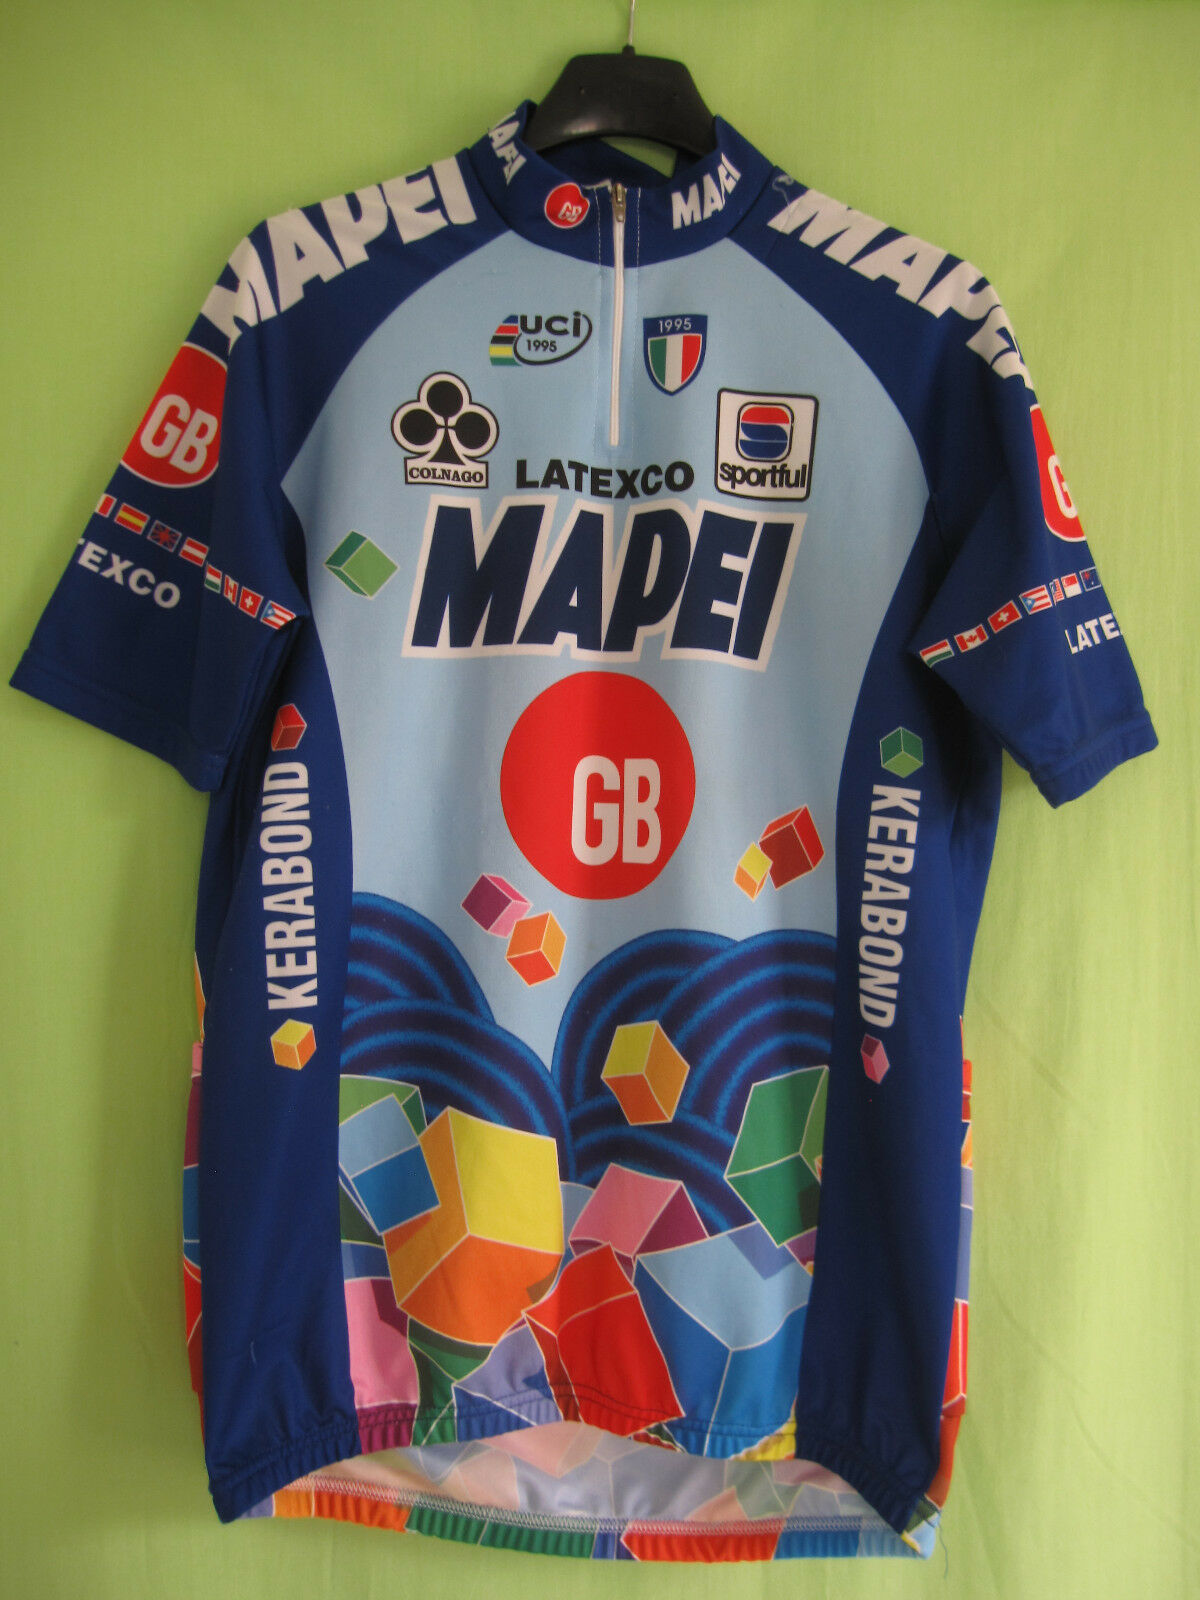 57774e8bc Maillot cycliste Mapei GB Tour 1995 uci Latexco Vintage Cycling jersey - L